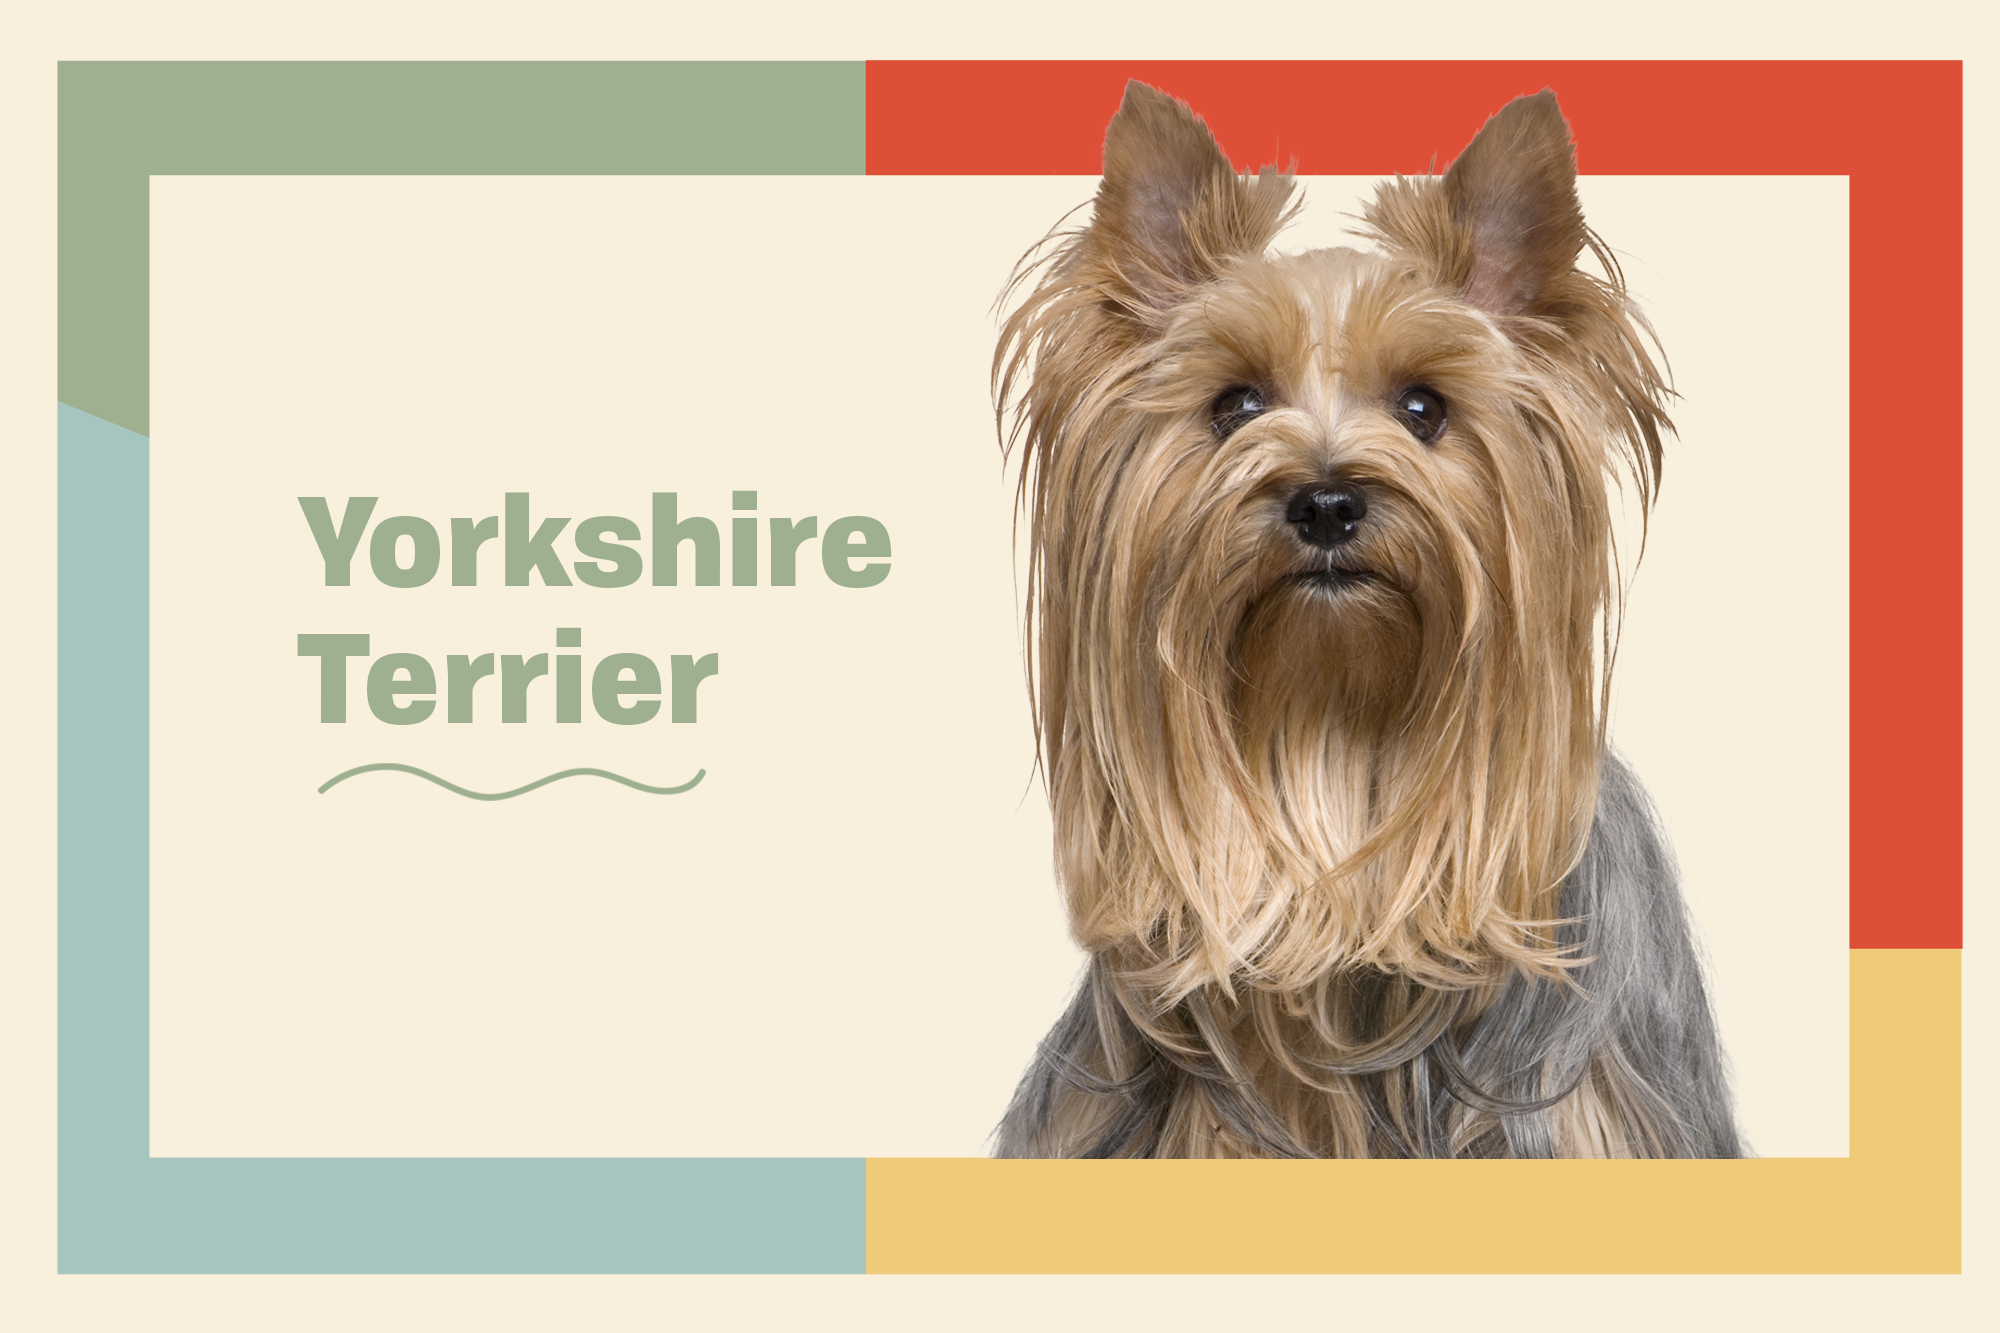 Yorkshire Terrier (Yorkie) Breed Photo